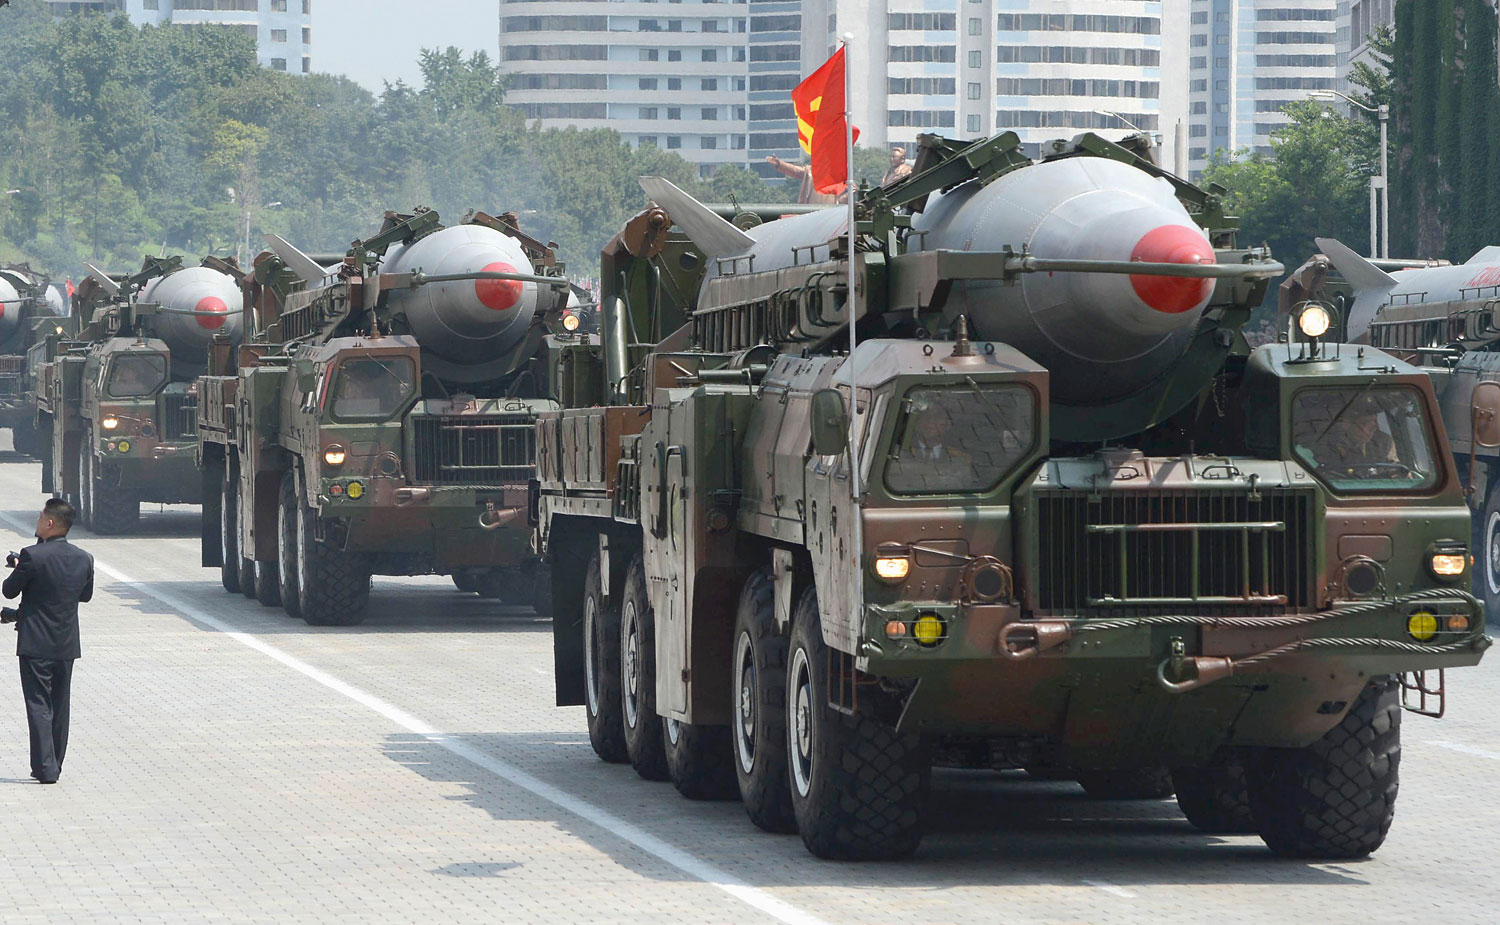 In this July, 2013 photo, military trucks carry Rodong missiles during a military parade at Kim Il Sung Square in Pyongyang.